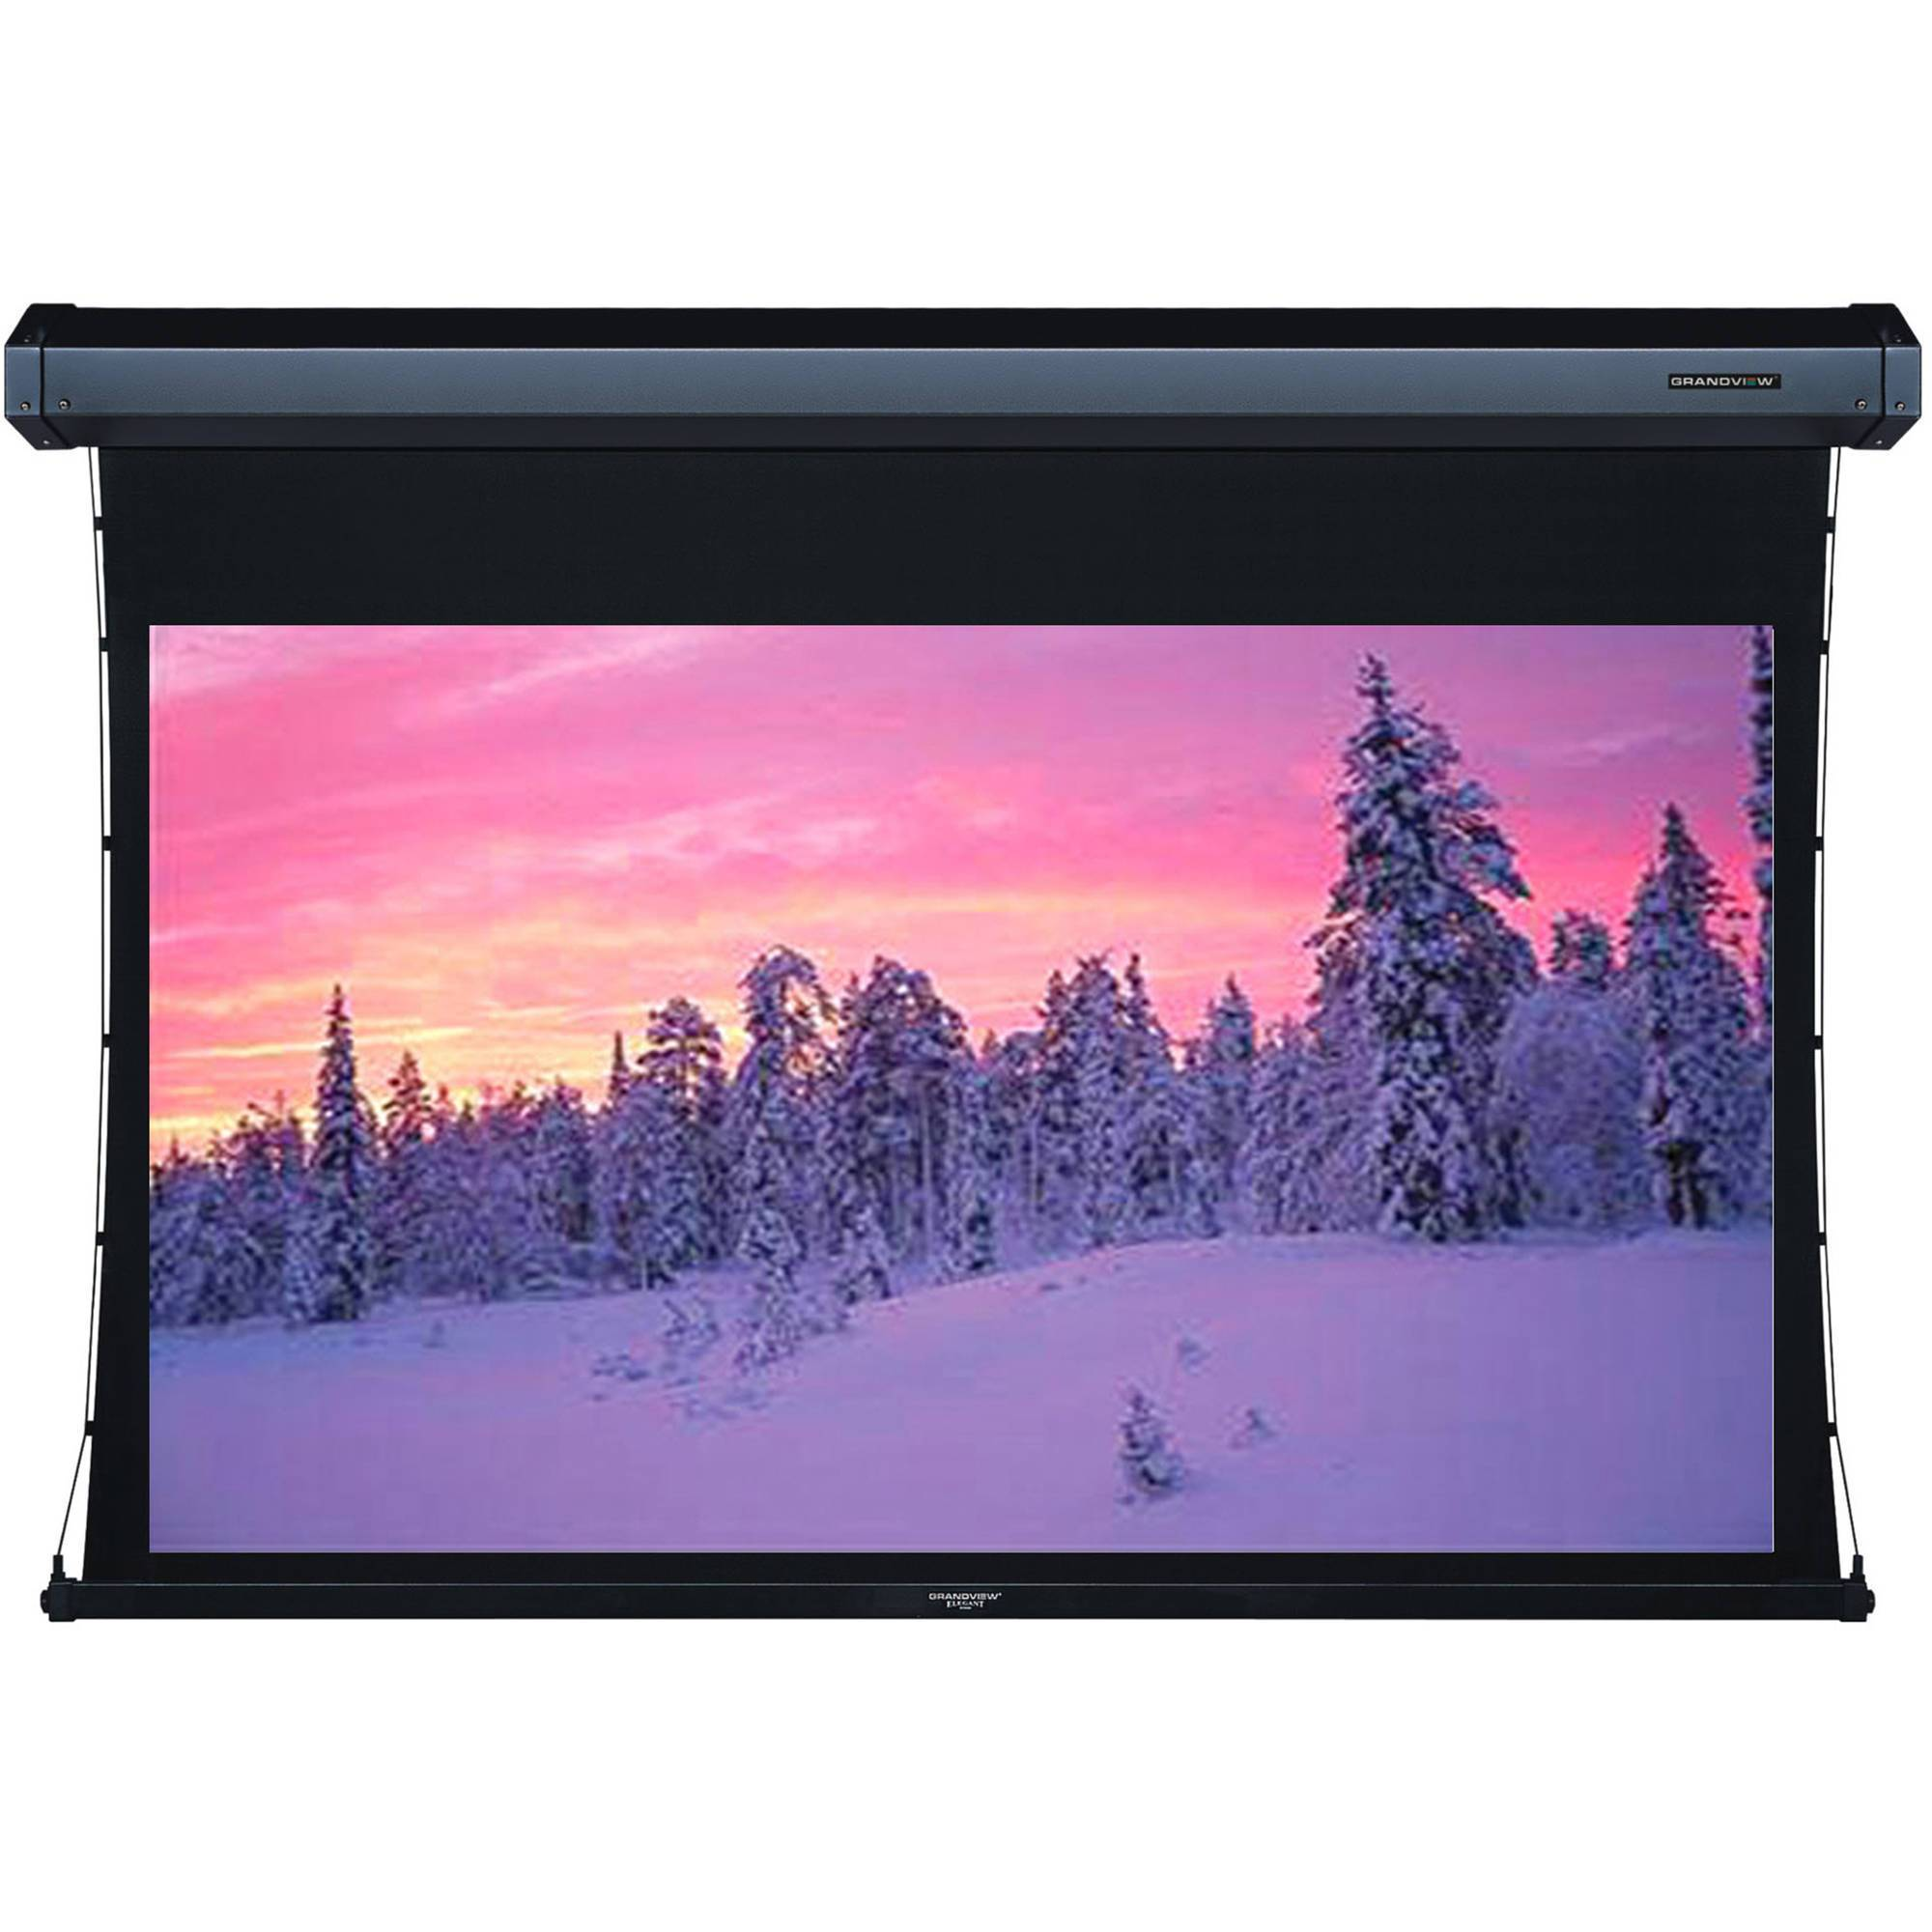 "Grandview Cyber 84"" Tab Tension Motorized Projector Screen"